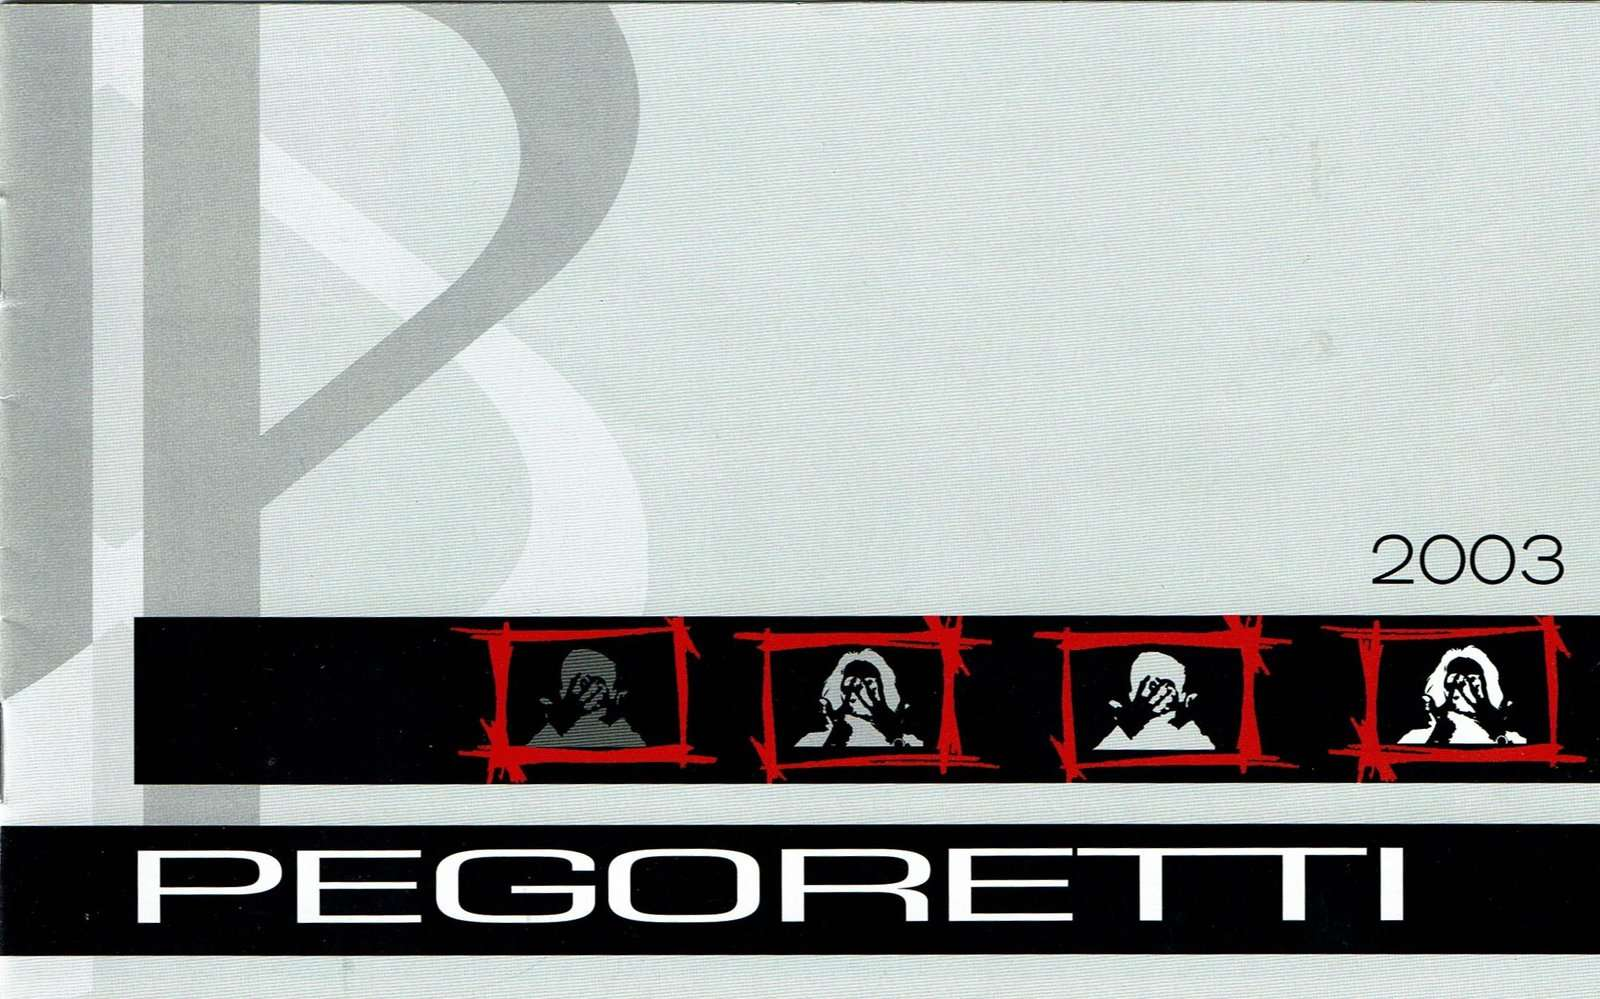 Link to scanned image of the 2003 Pegoretti catalog